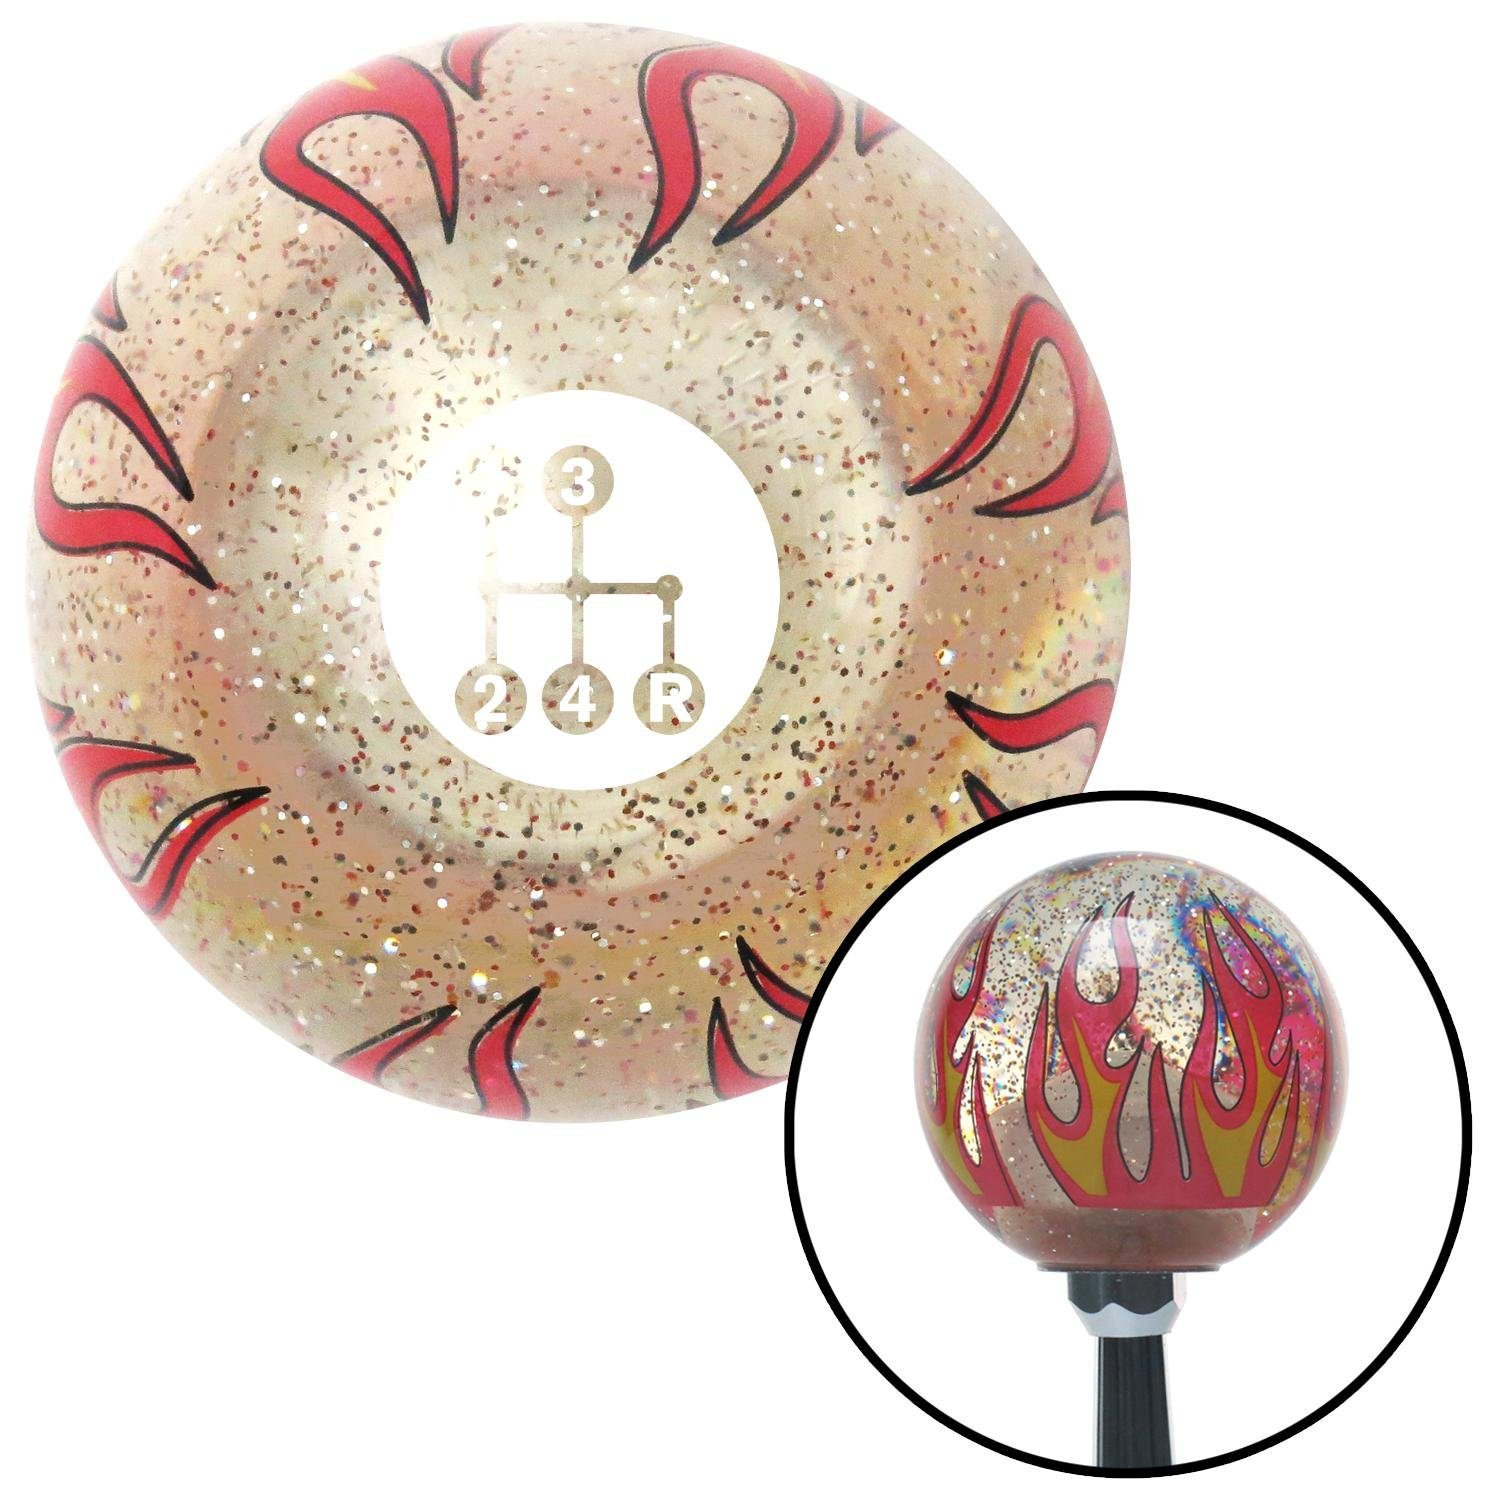 American Shifter 296027 Shift Knob White 4 Speed Shift Pattern - Dots 6 Clear Flame Metal Flake